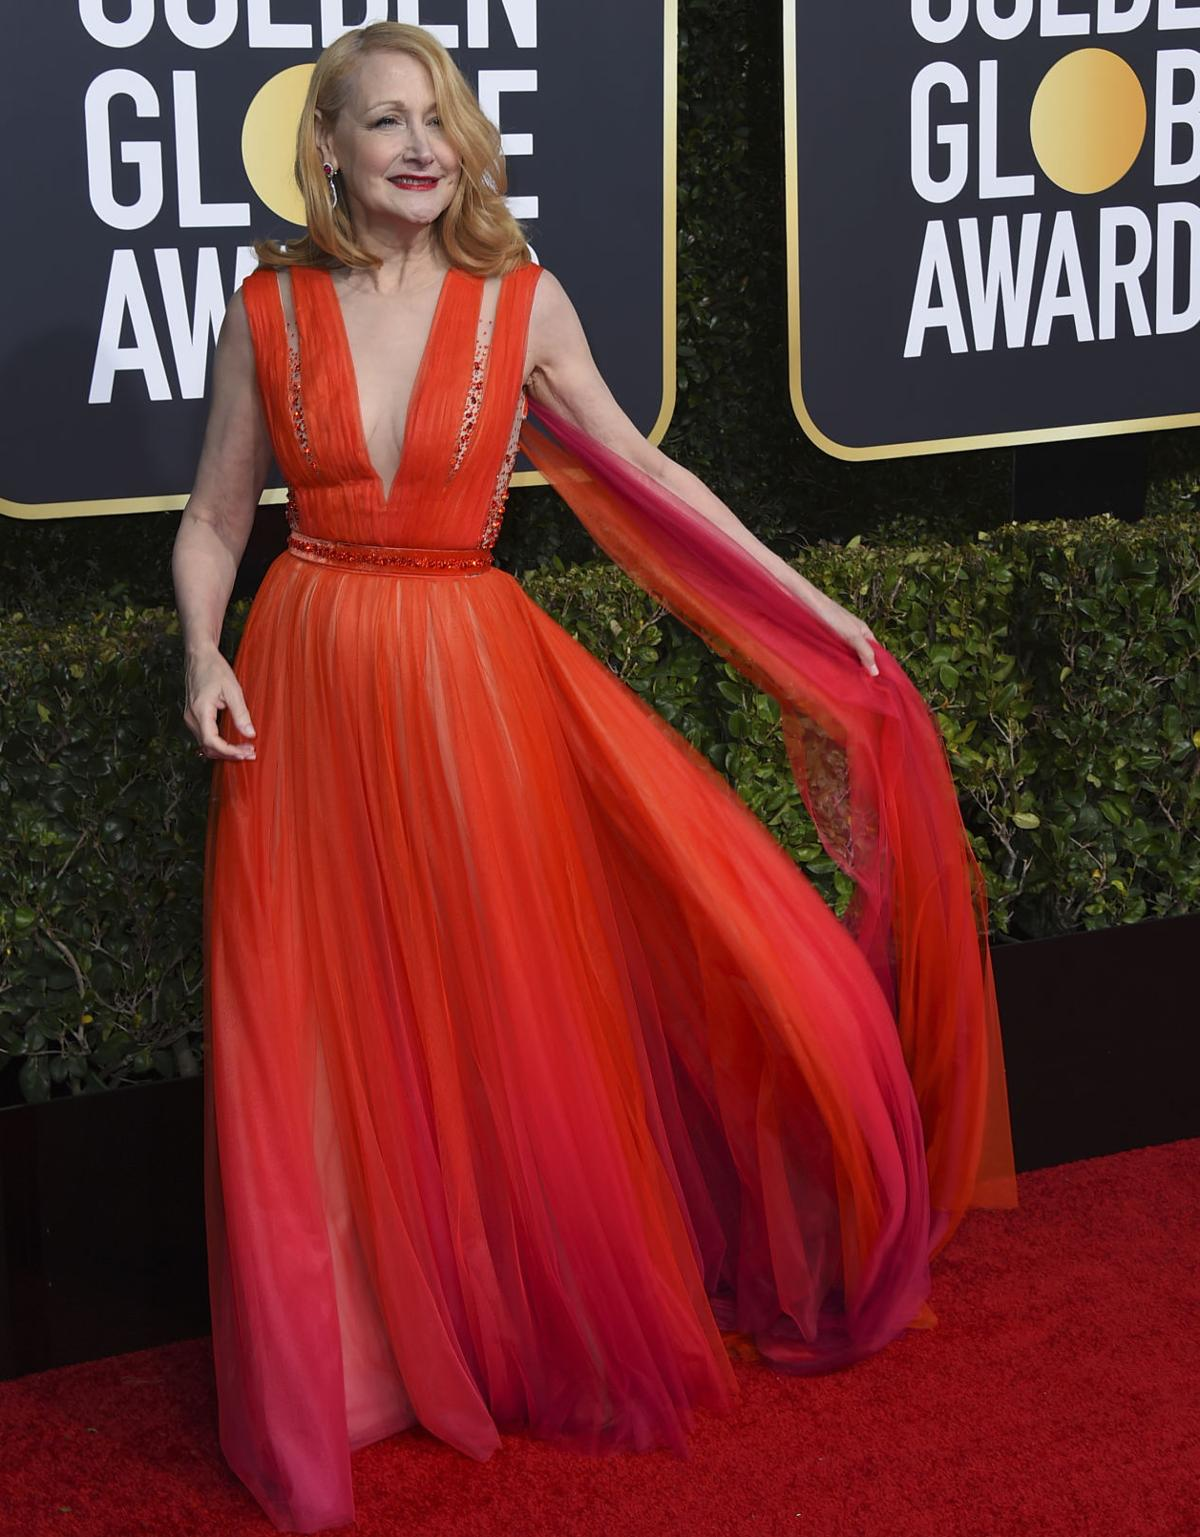 76th Annual Golden Globe Awards - Arrivals (copy)